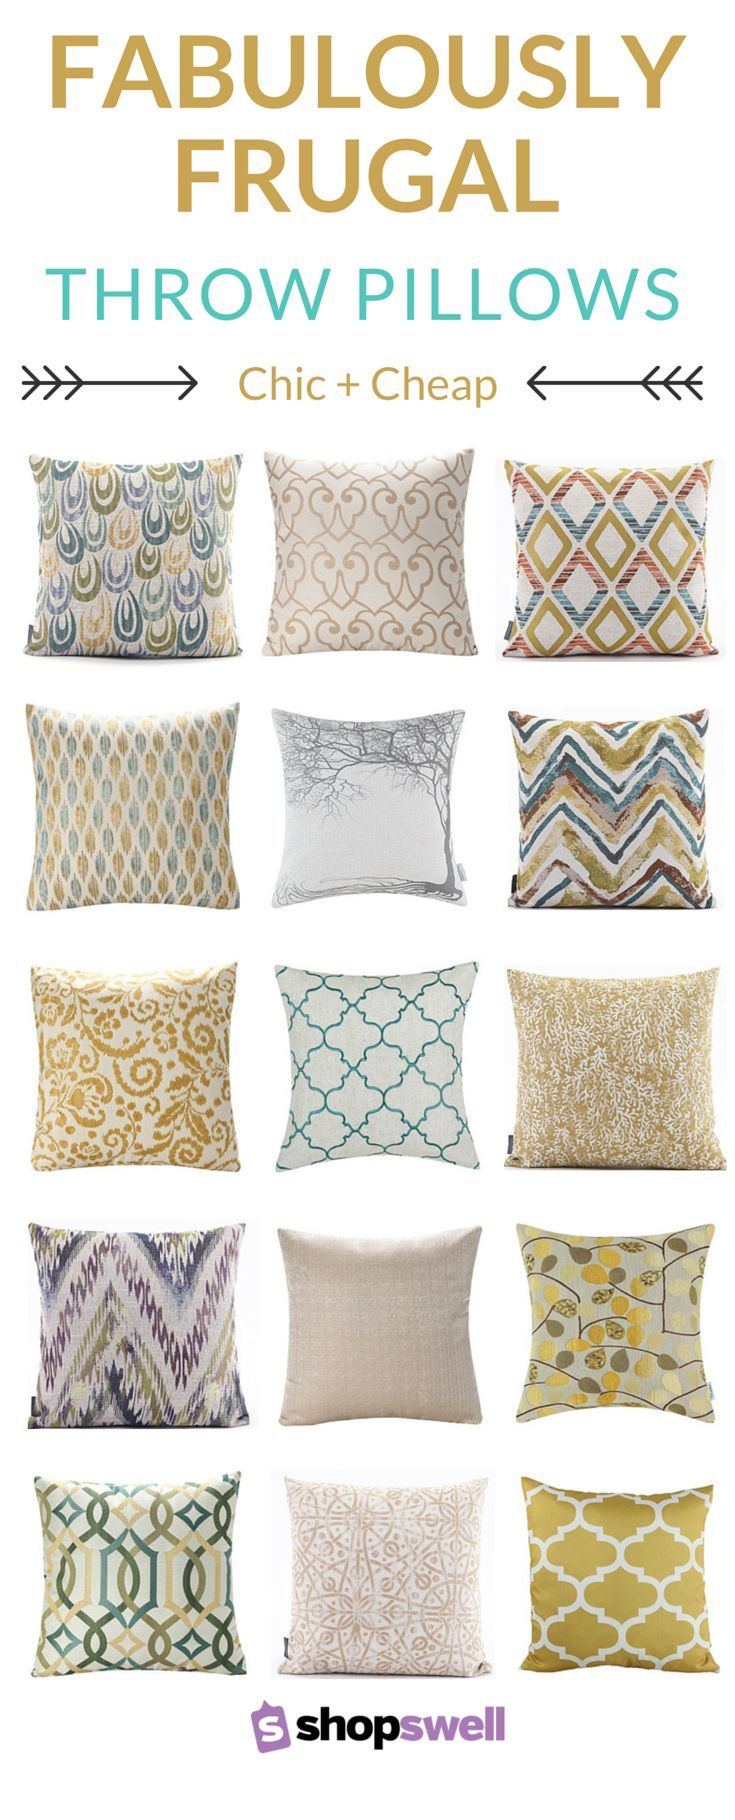 Designer styled home decor doesn't have to cost and arm and a leg. Just check out this collection of throw pillows and covers. At $15 or less no one will ever know decorated on a budget.